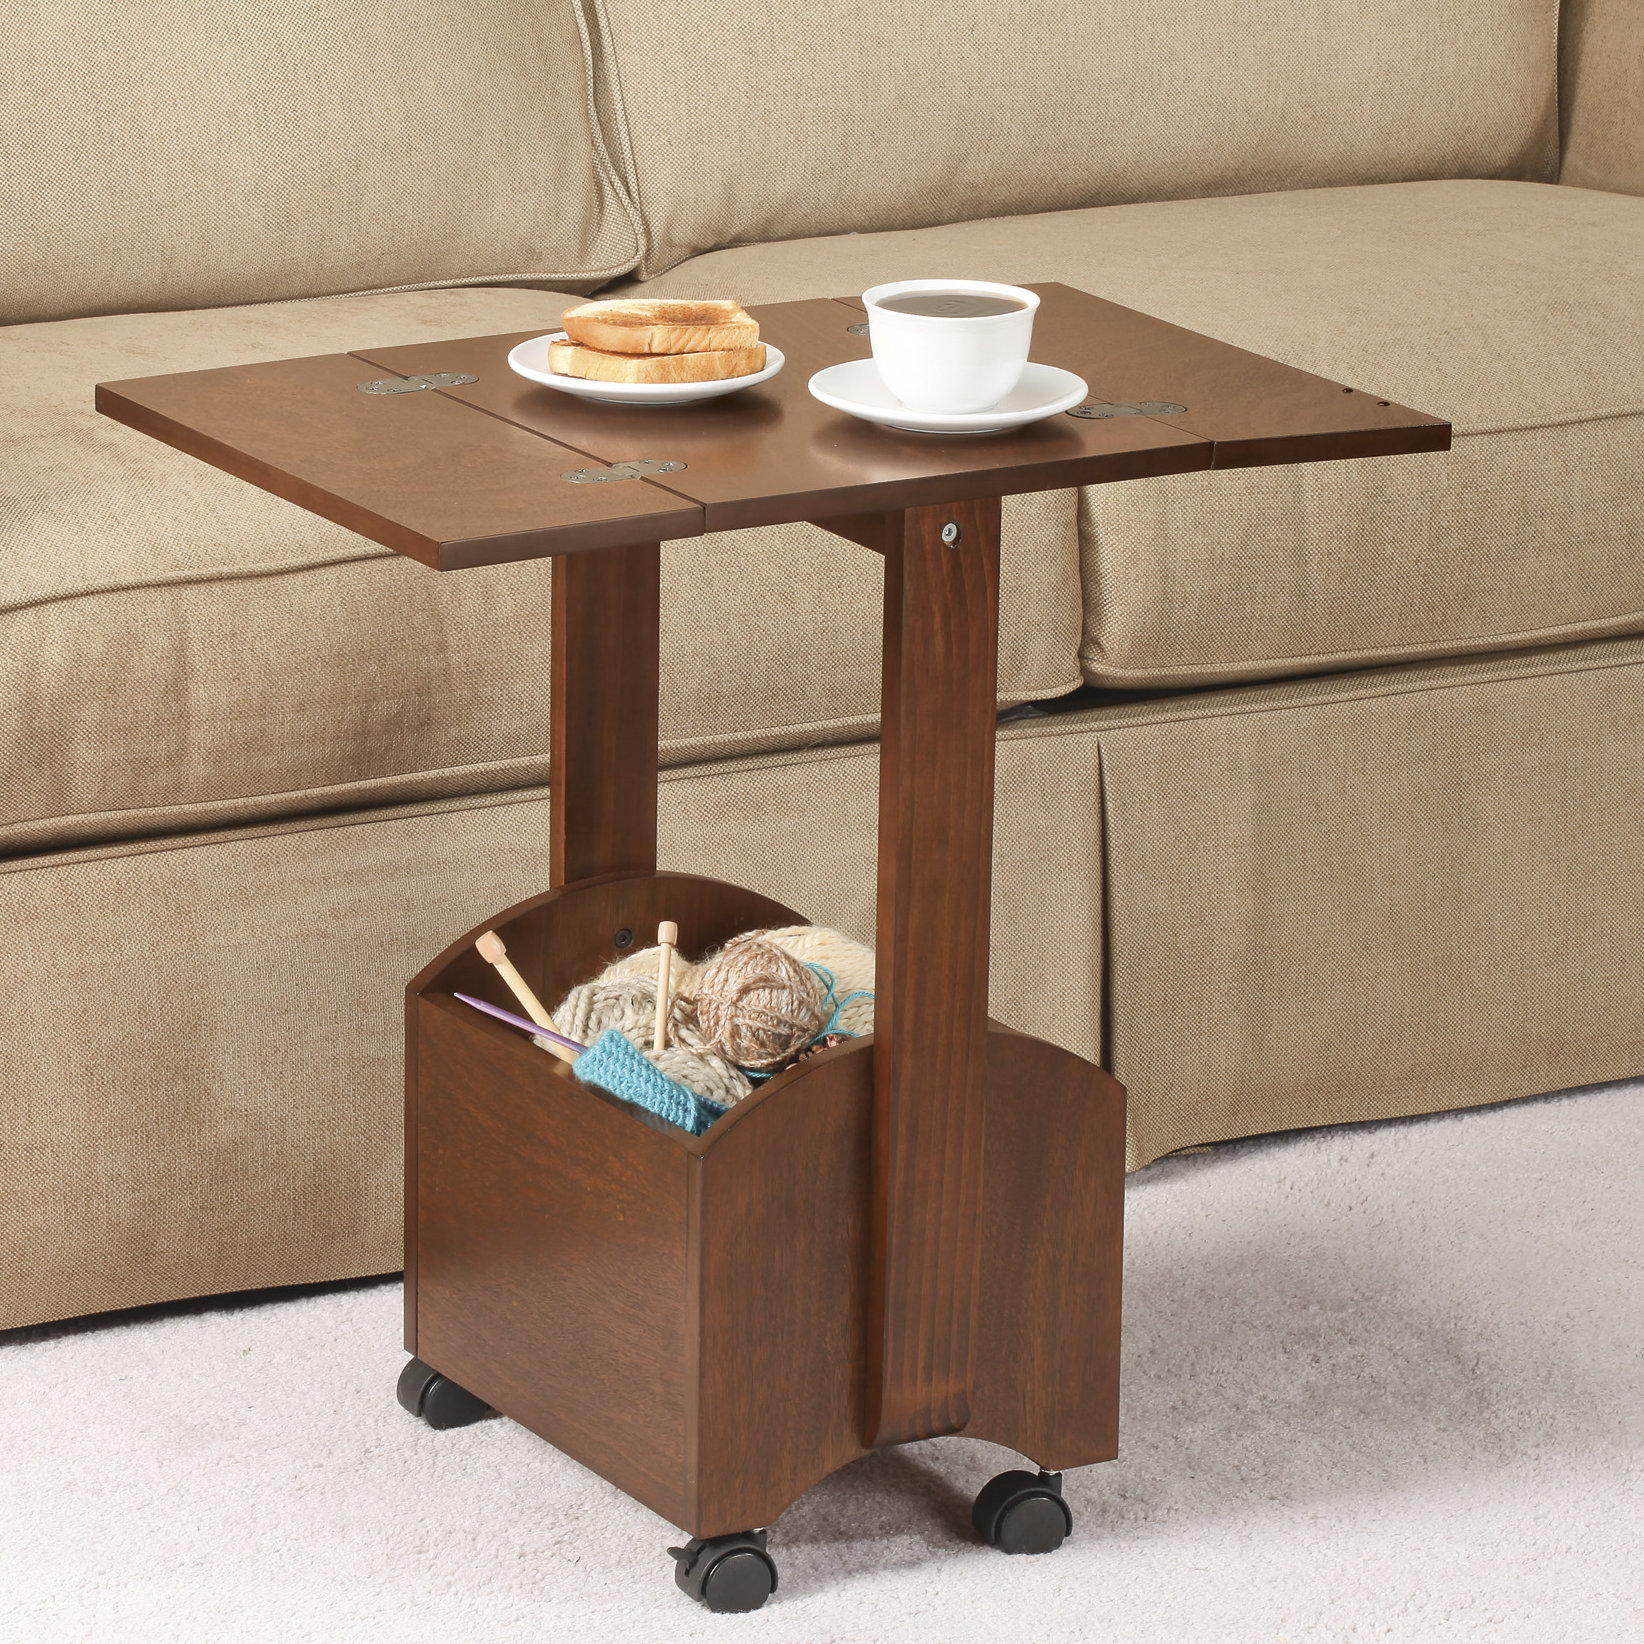 end table folding wooden dining with fold down sides side chess endgame tablebase tiny refrigerator pottery barn dresser ebony wood stain tables under small oak ikea cube shelf